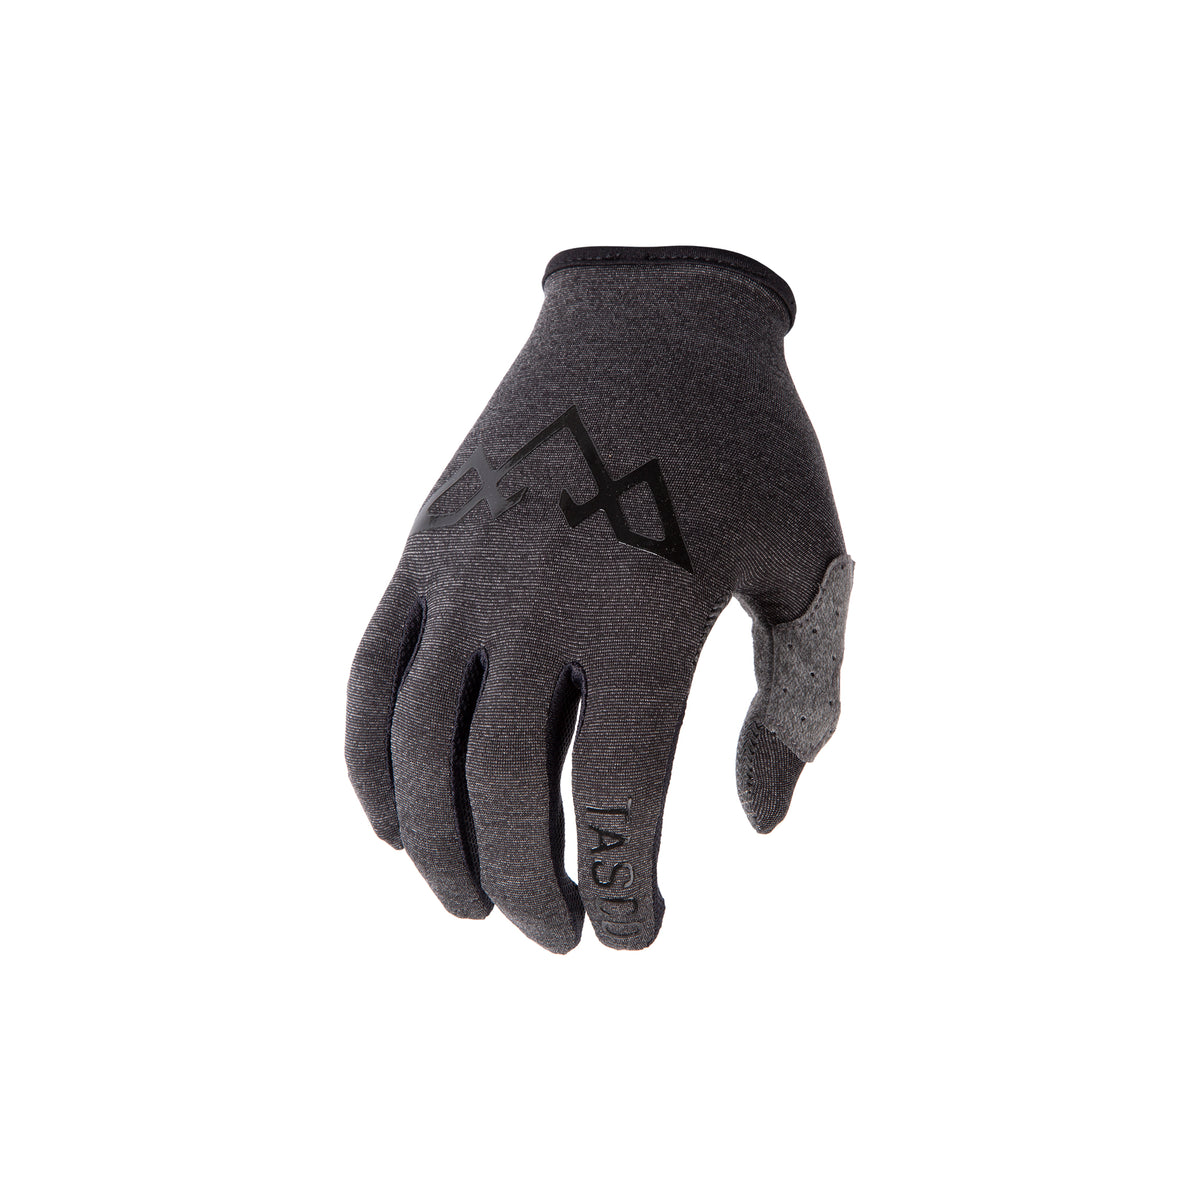 RECON Ultralight Cycling Gloves - The Stealth - MTB Lifestyle | TASCO MTB